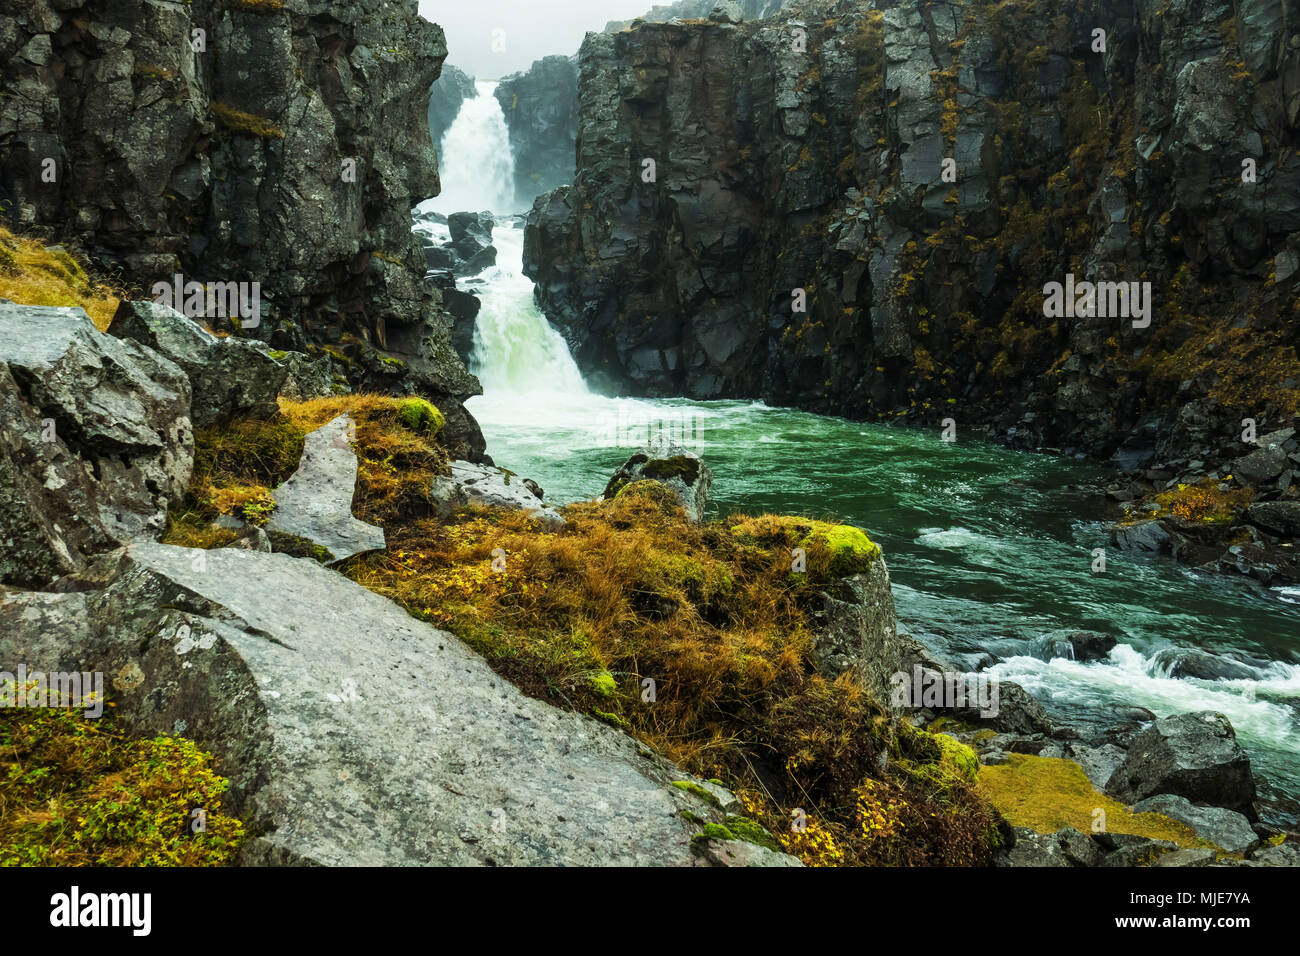 Waterfall in Austurland, Iceland - Stock Image